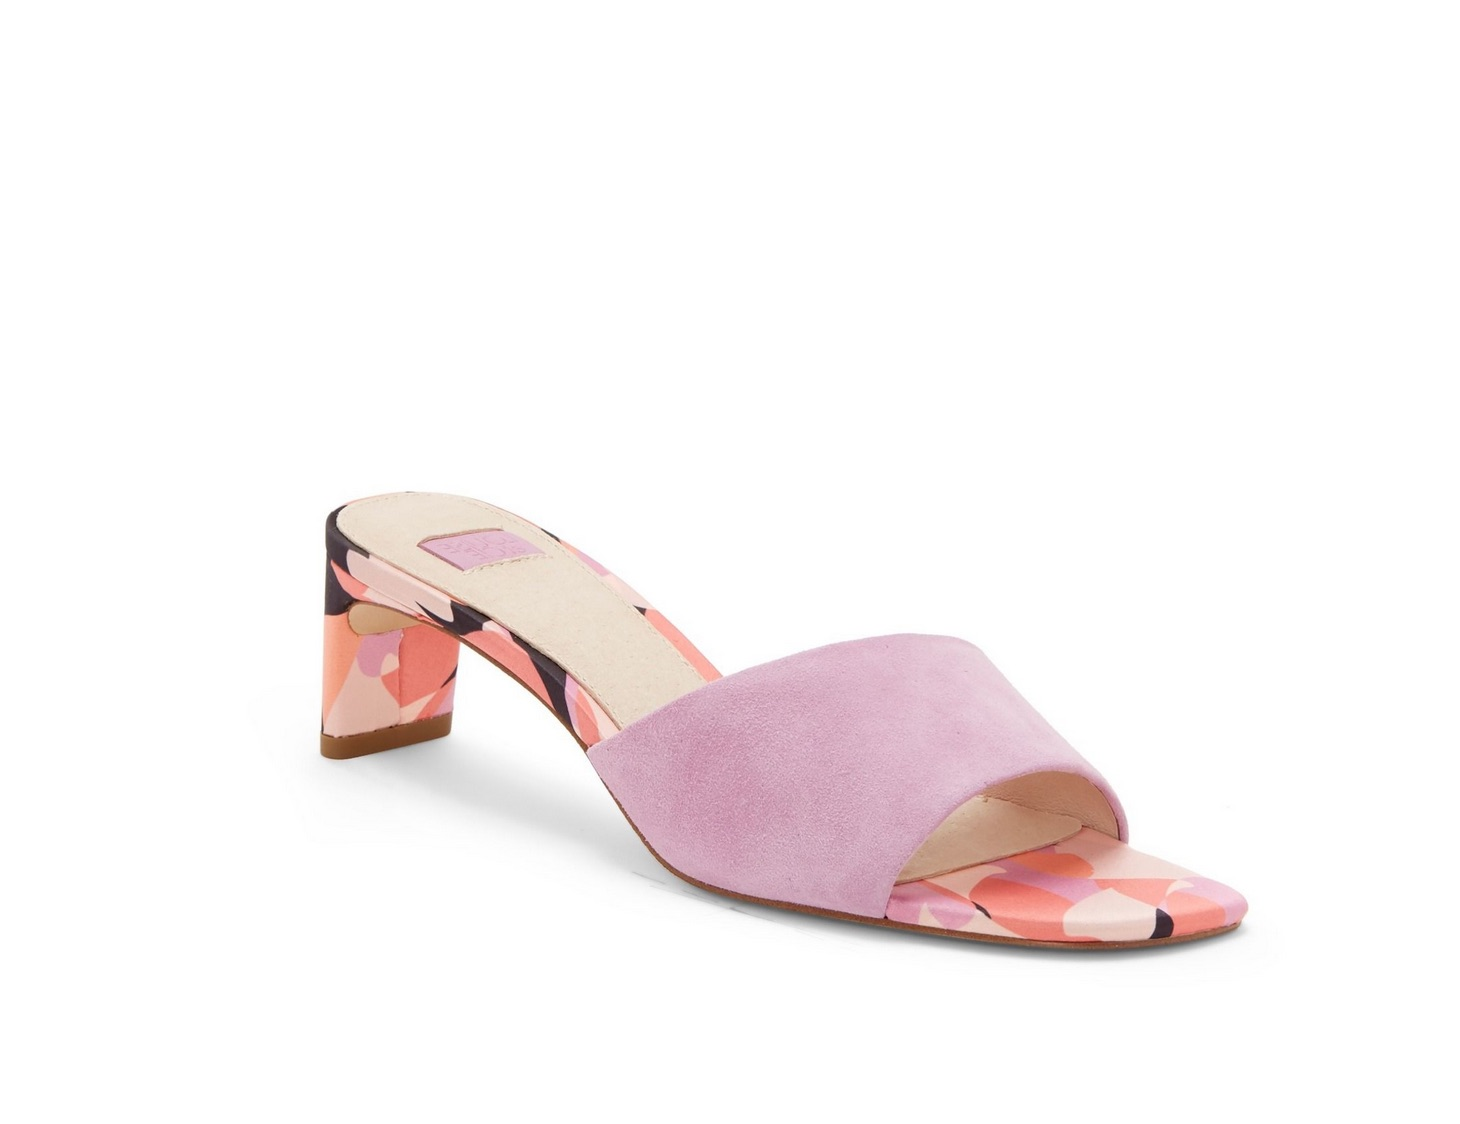 The Vince Camato Pink Sandals We Adore